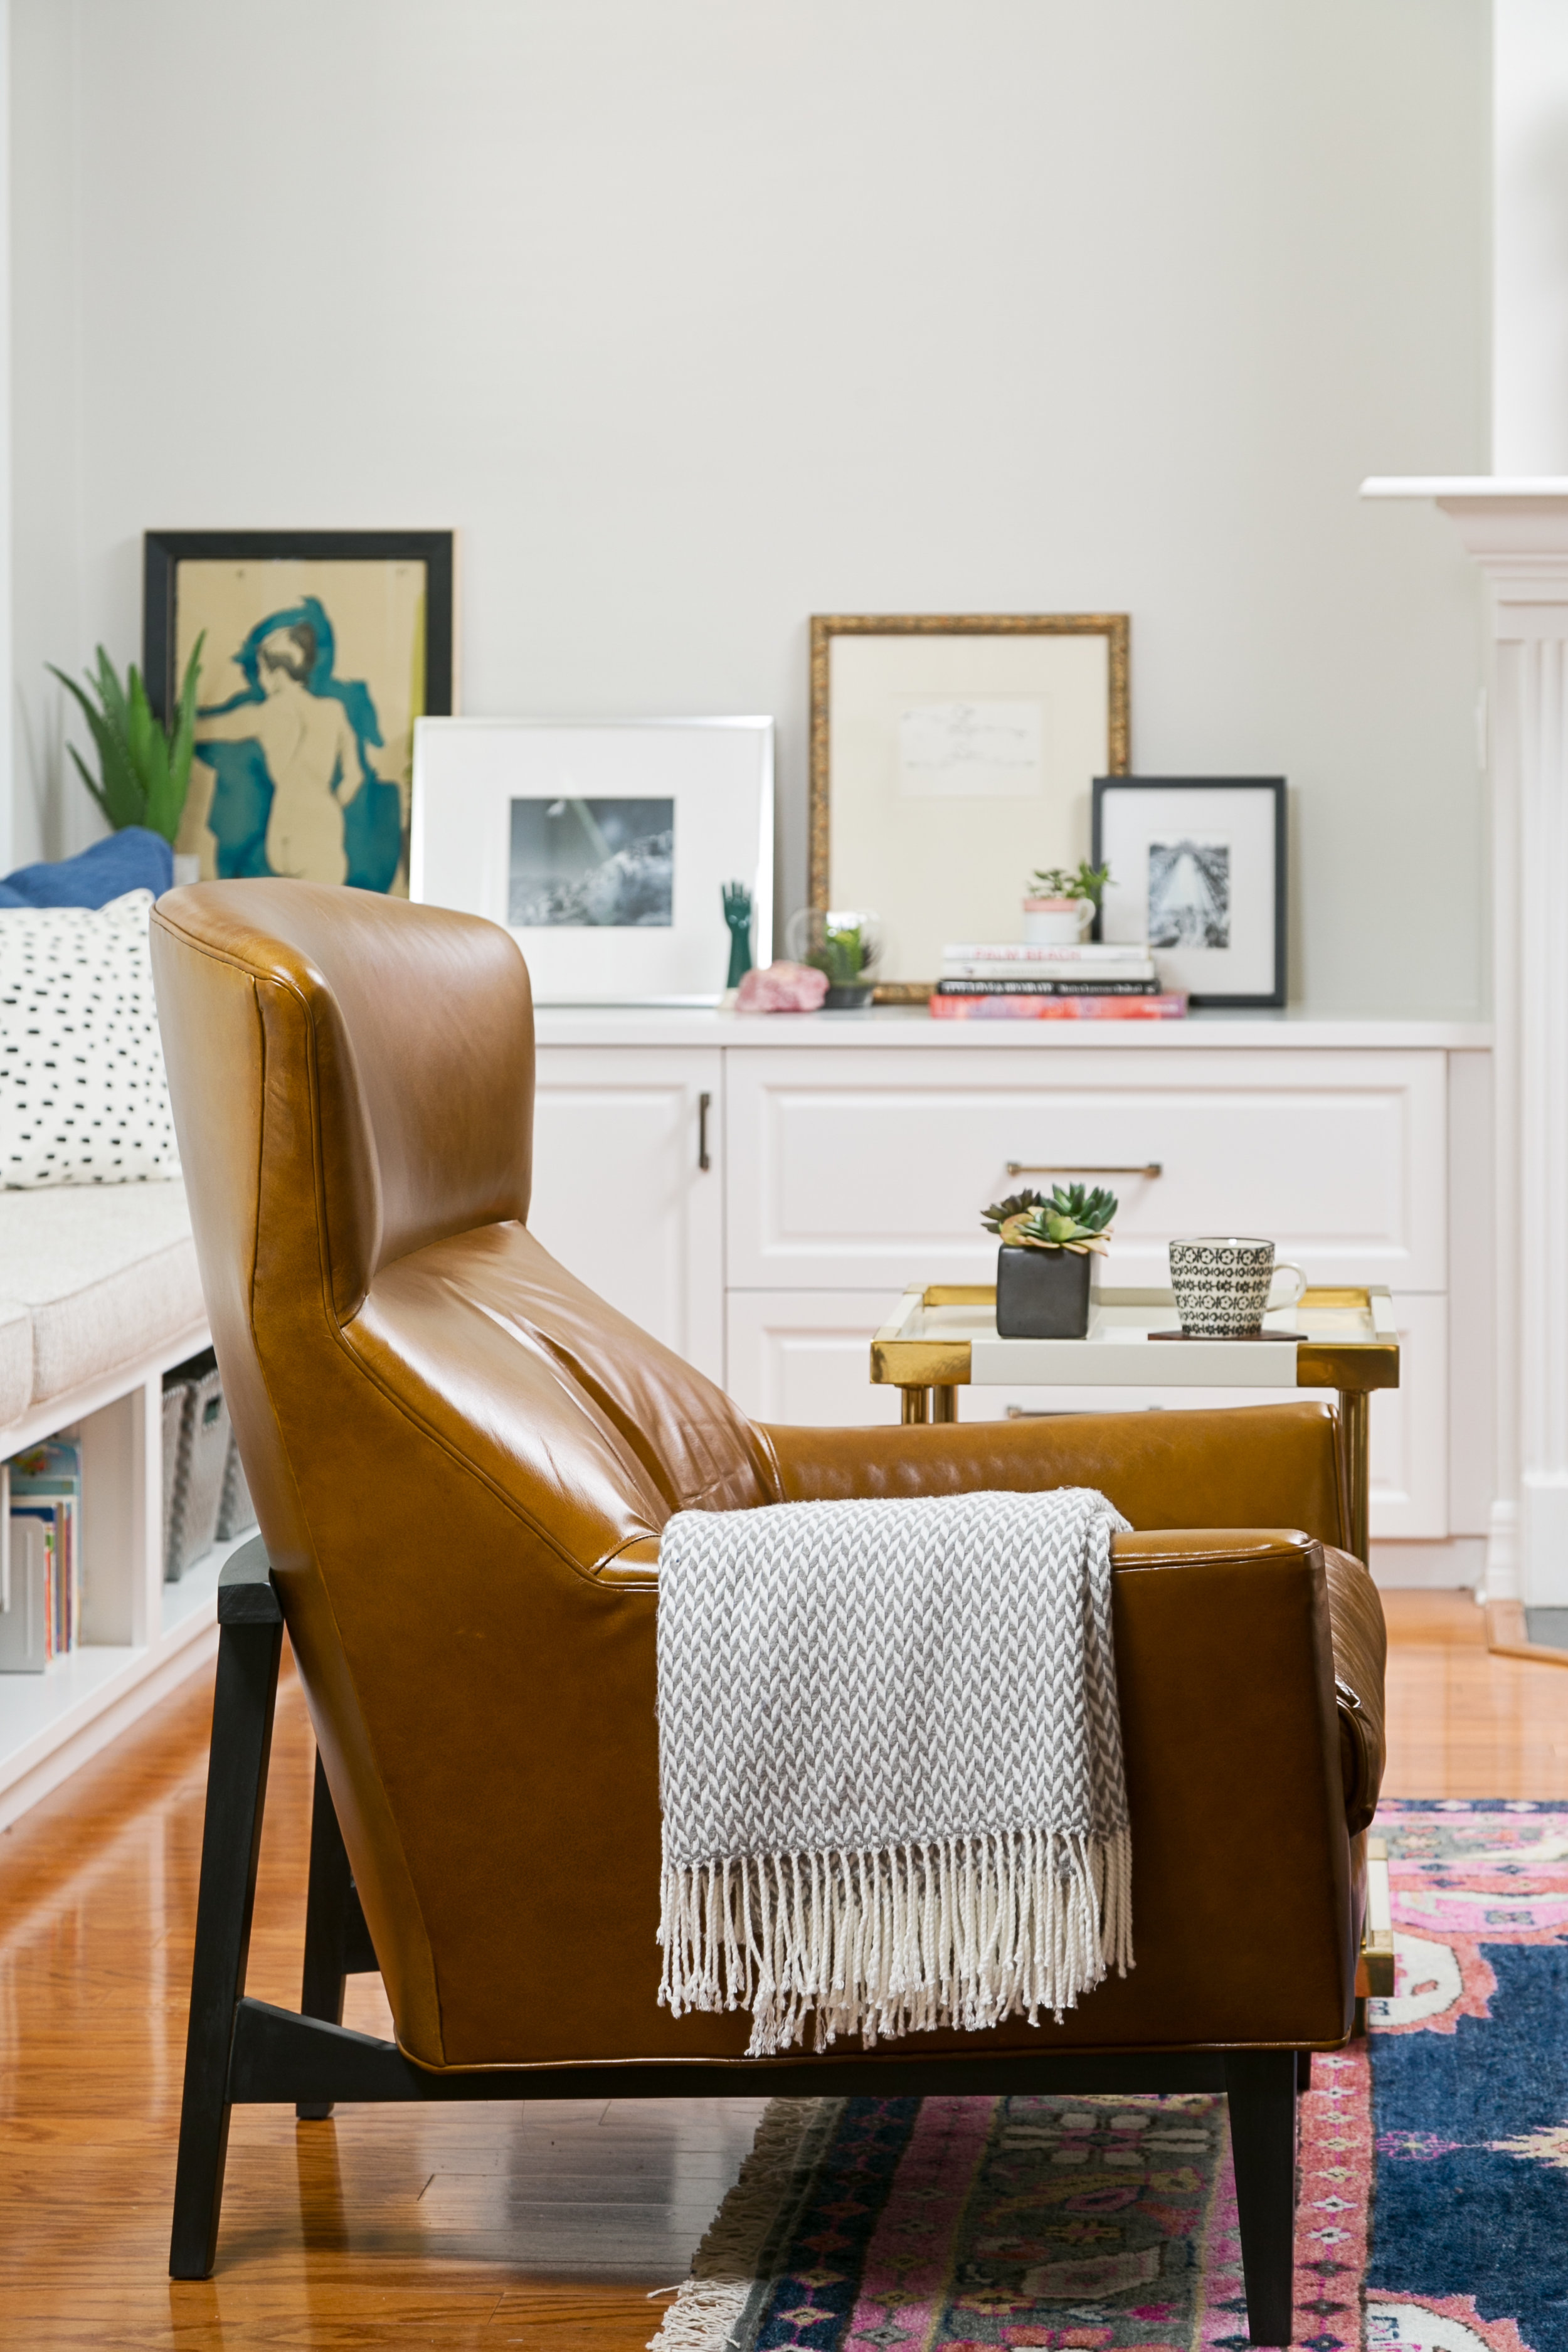 MODERN LEATHER CHAIR COGNAC | LISA GILMORE DESIGN